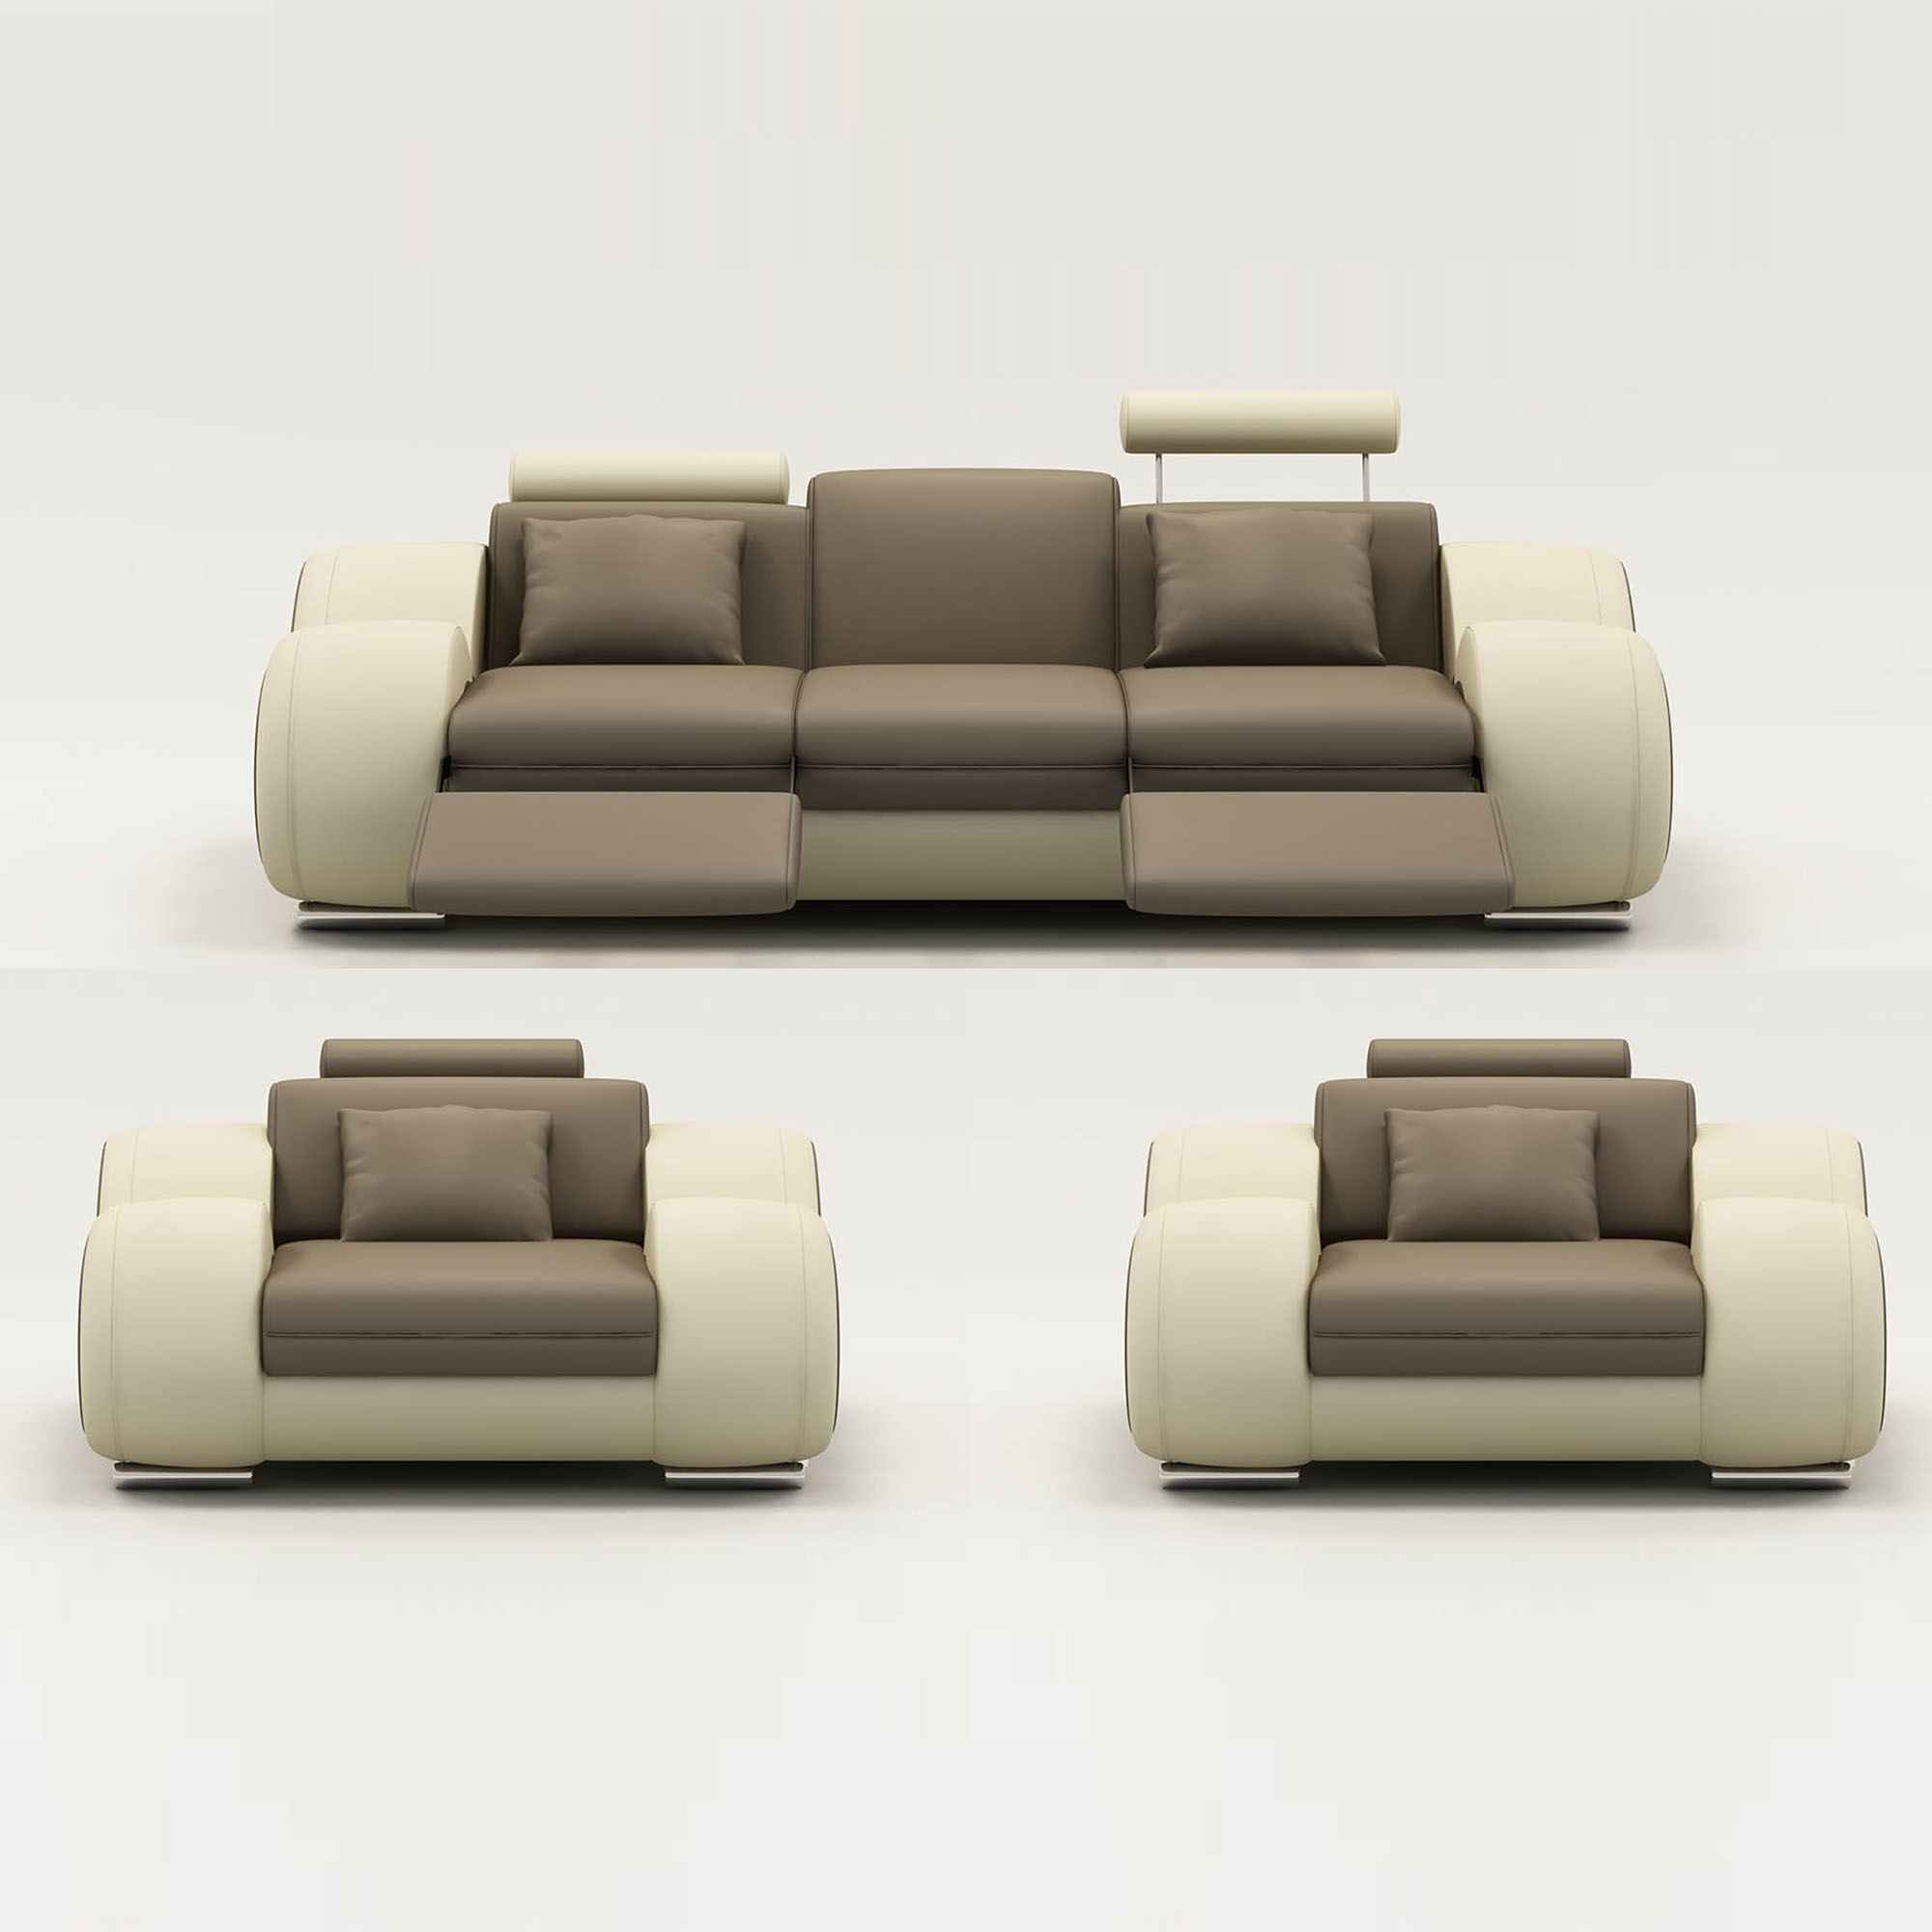 Ensemble Canape Beige Ensemble Canapé Relax 3 1 1 Places Marron Et Beige Oslo